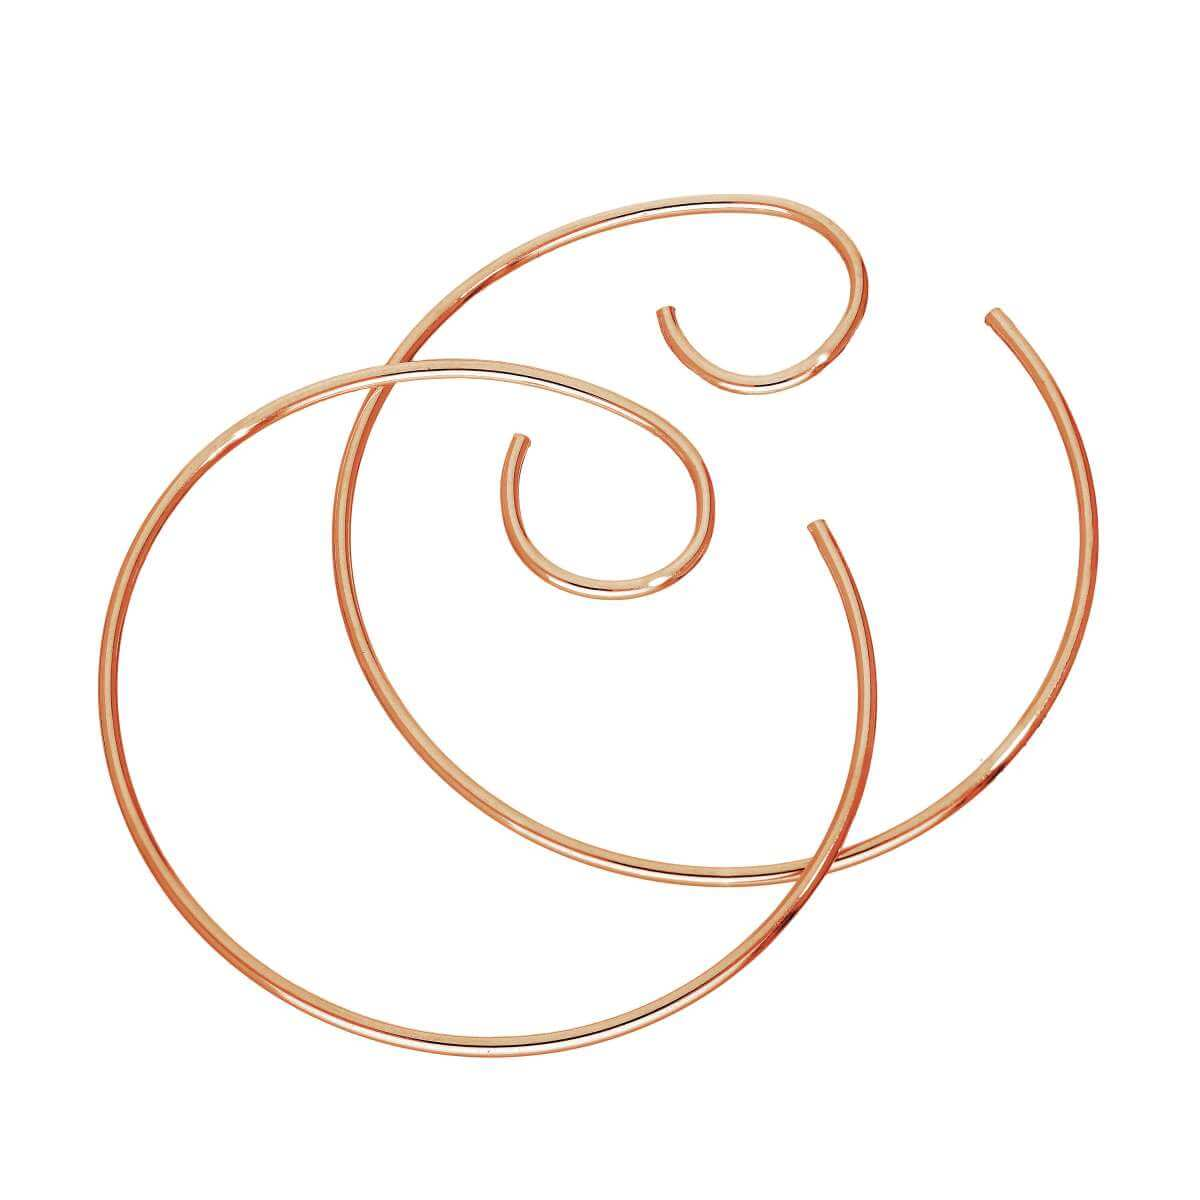 Rose Gold Plated Sterling Silver Pull Through Bar Swirl Earrings